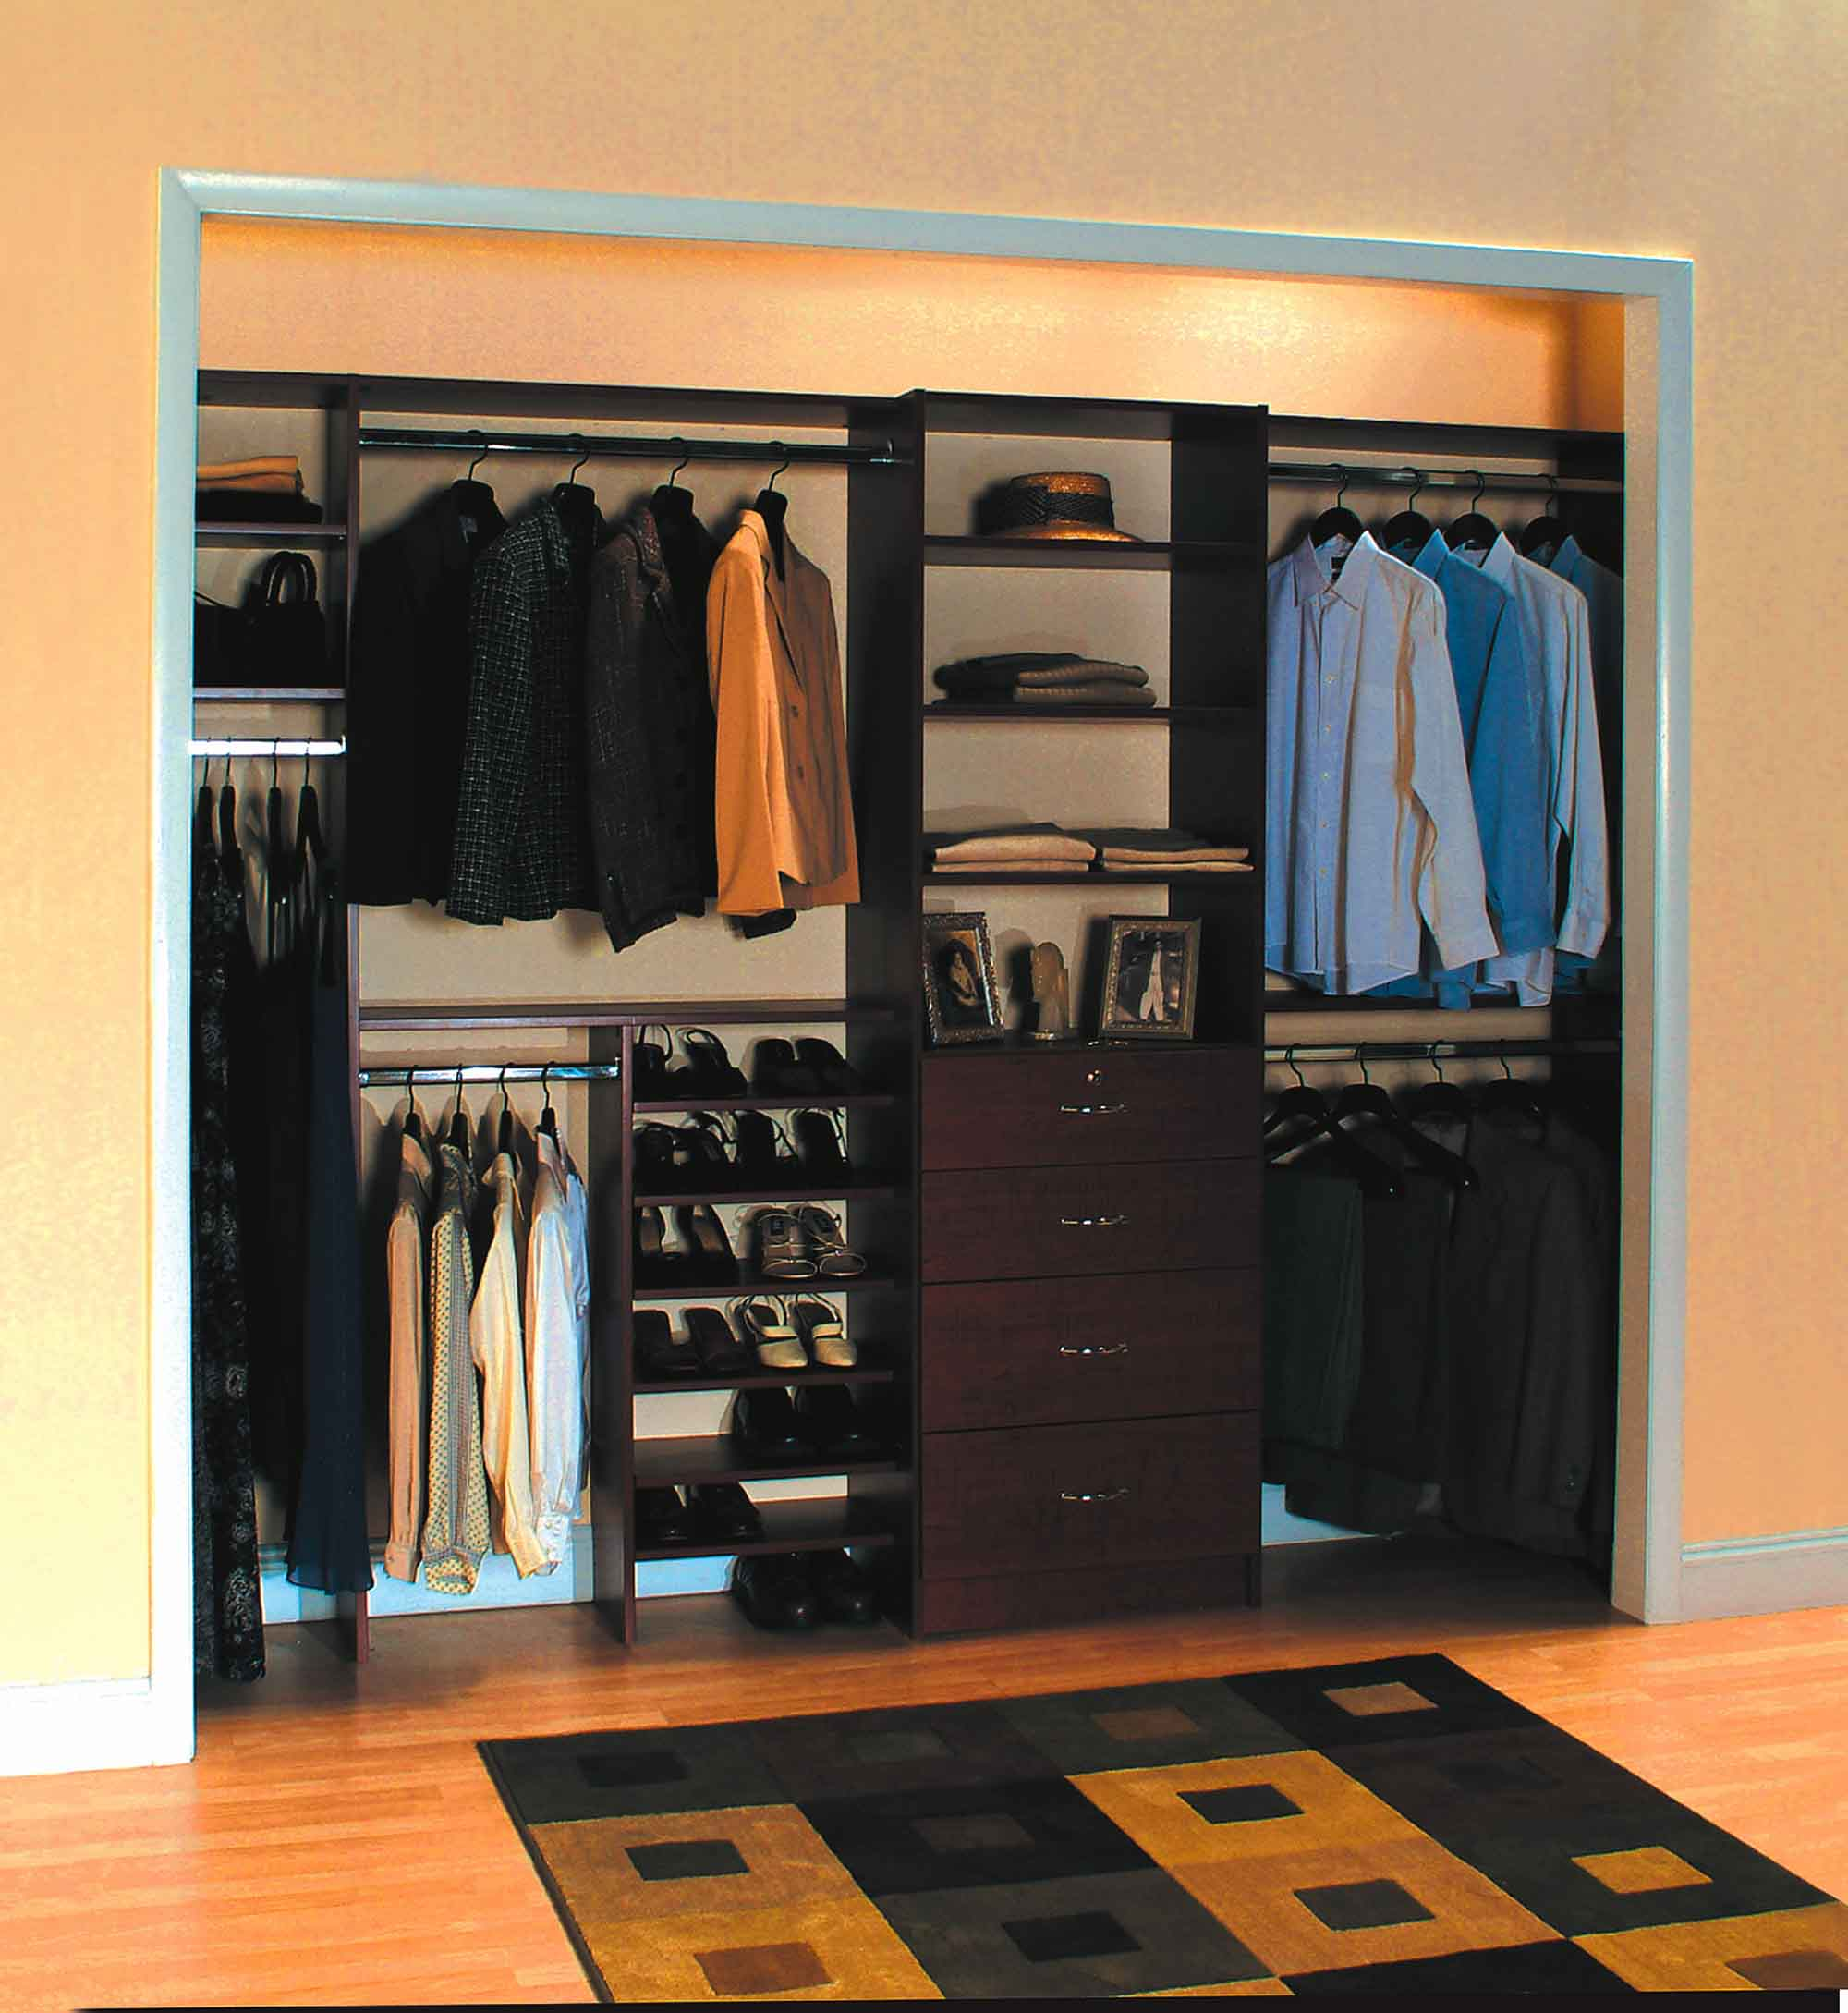 Woman's reach-in closet organized with shelving